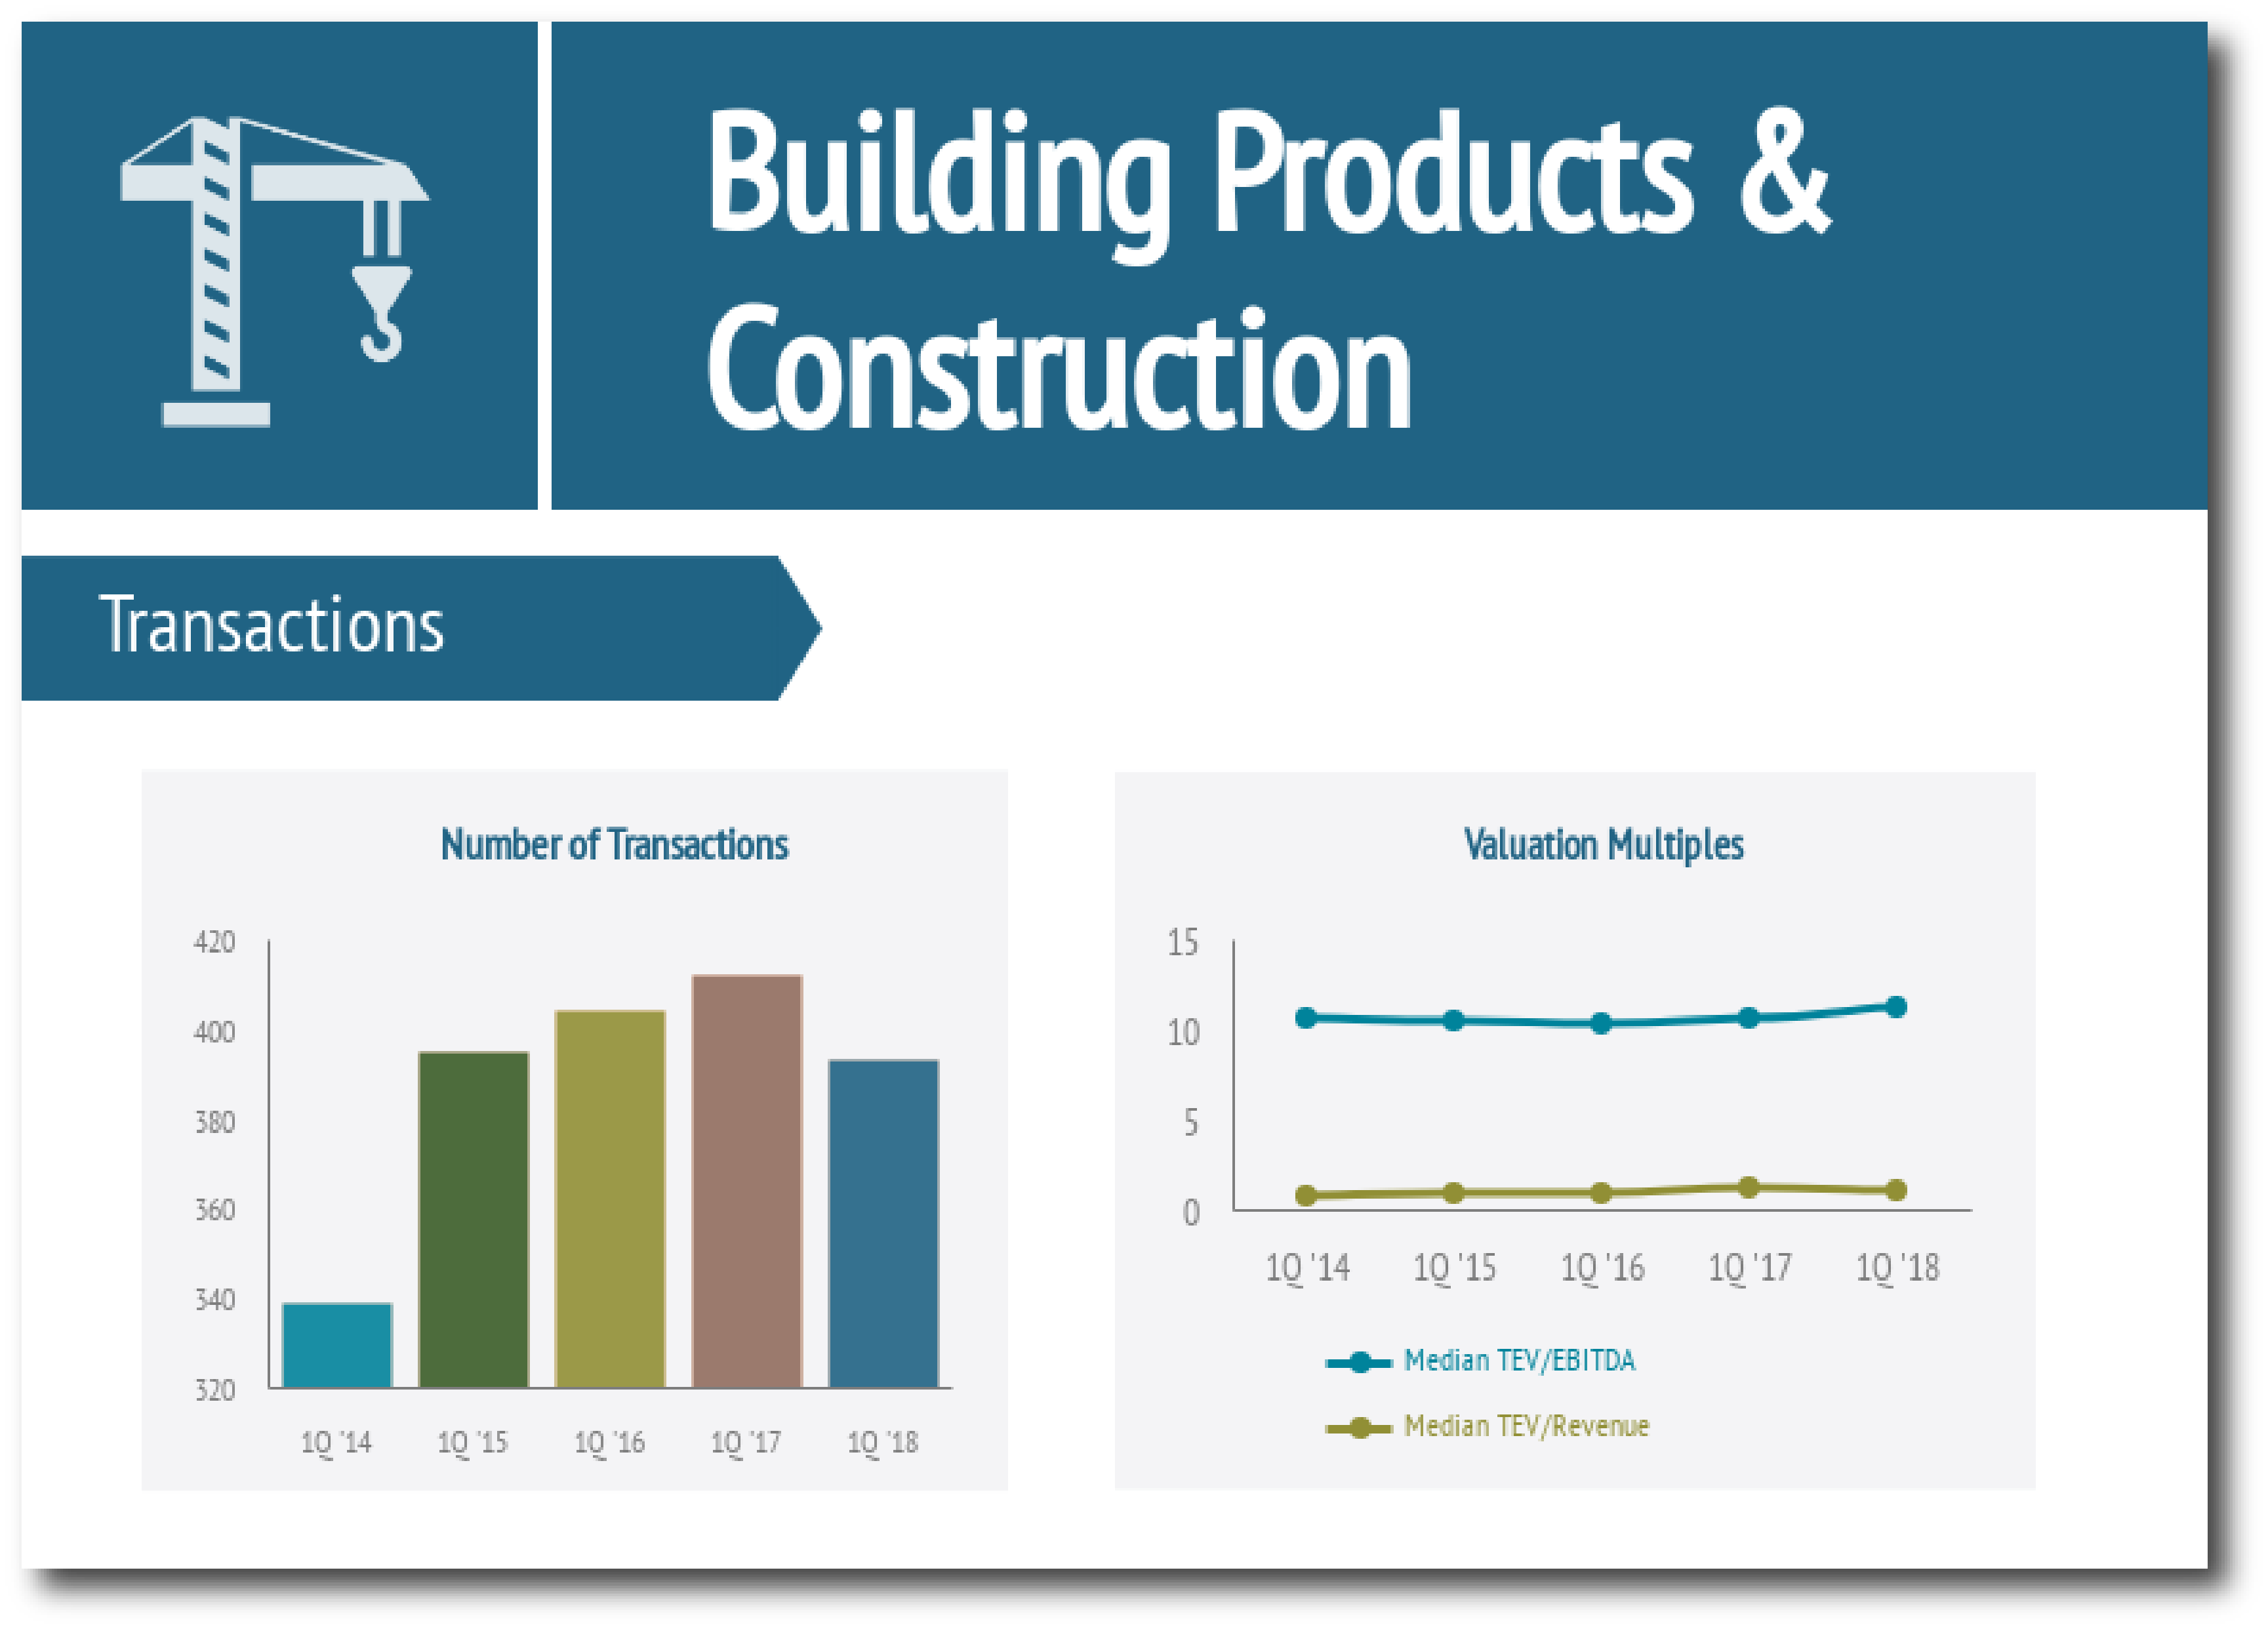 Building Products & Construction Industry Report